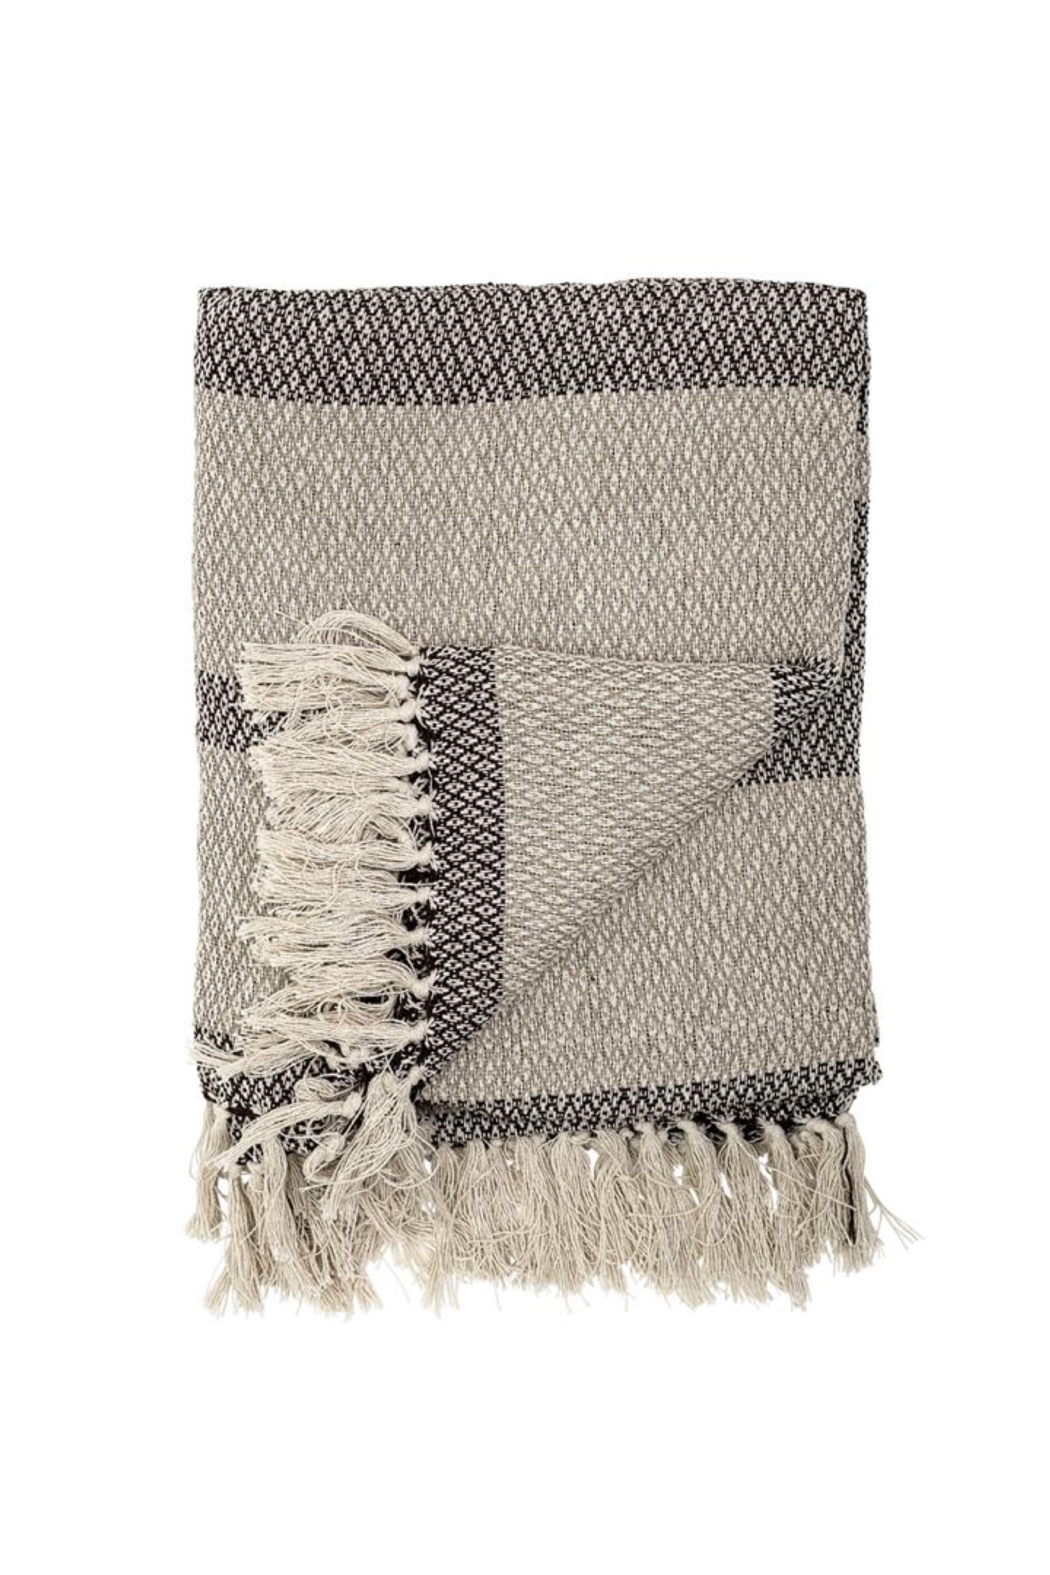 Bloomingville Cozy Up Throw In Shades Of Grey - Main Image